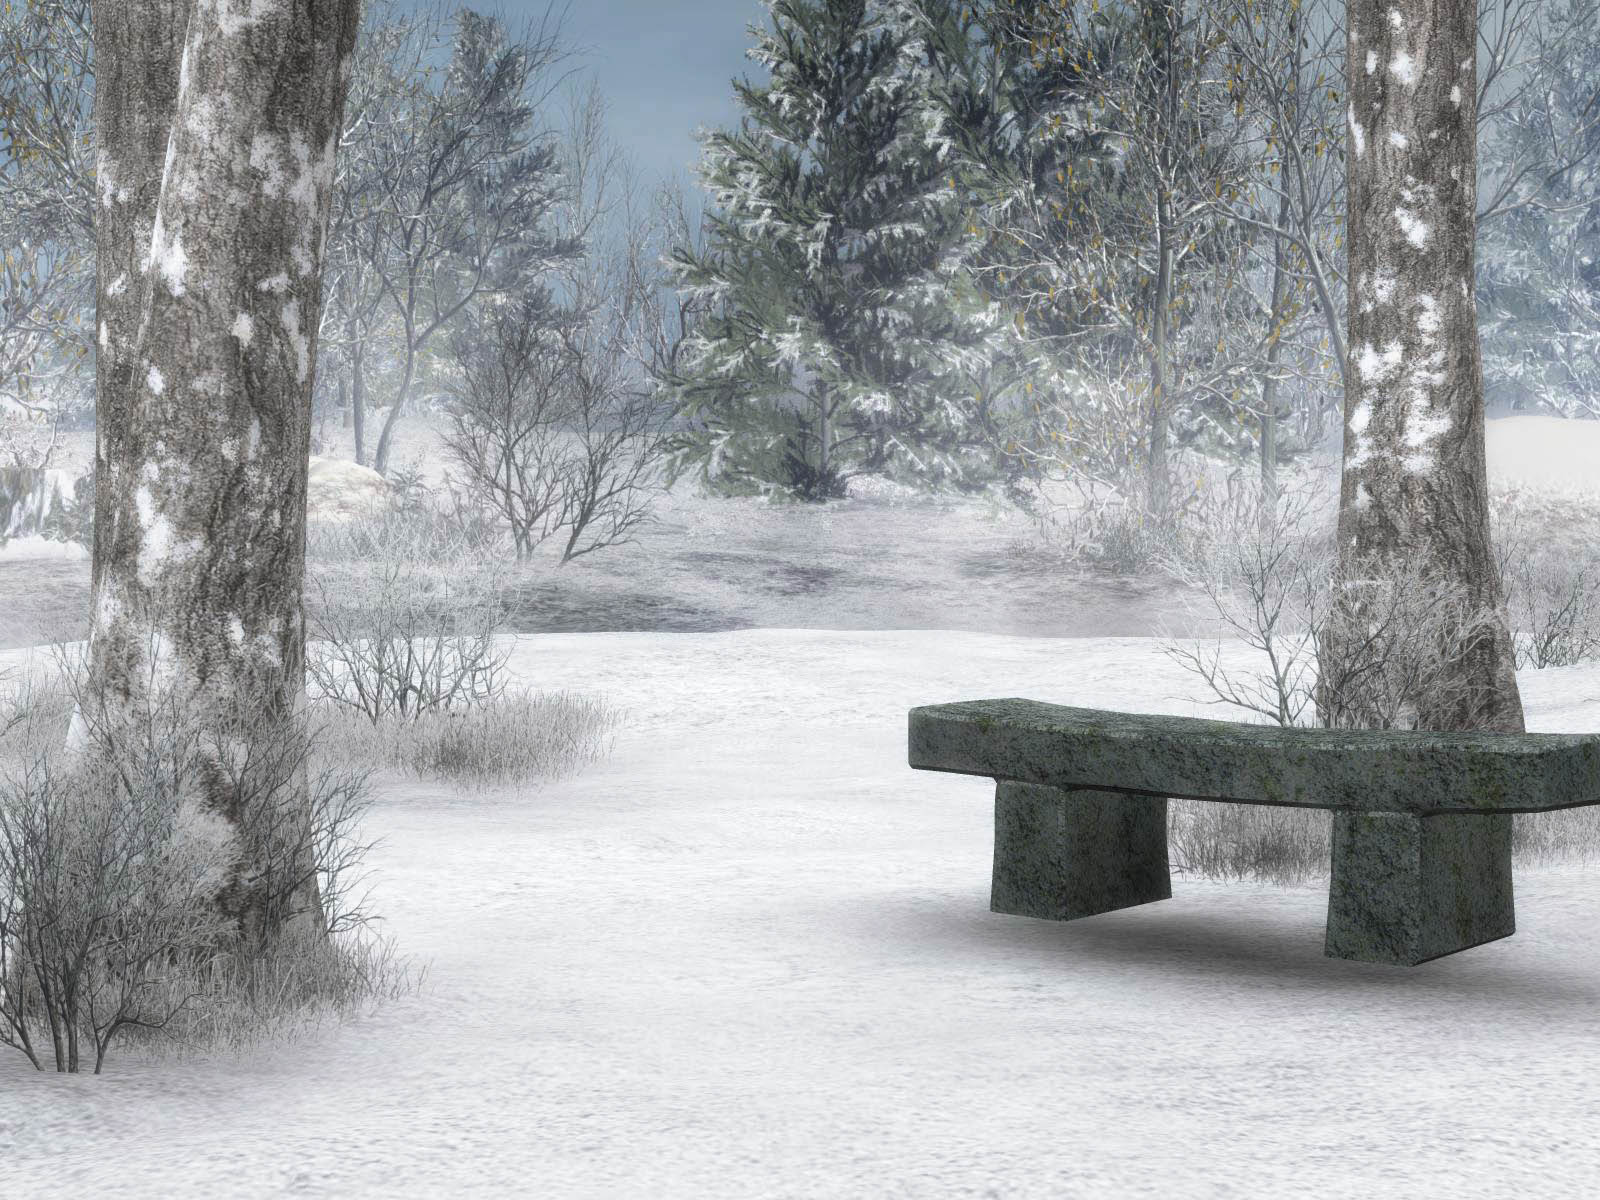 home downloads wallpaper winter background 2 winter background 2 rang 1600x1200